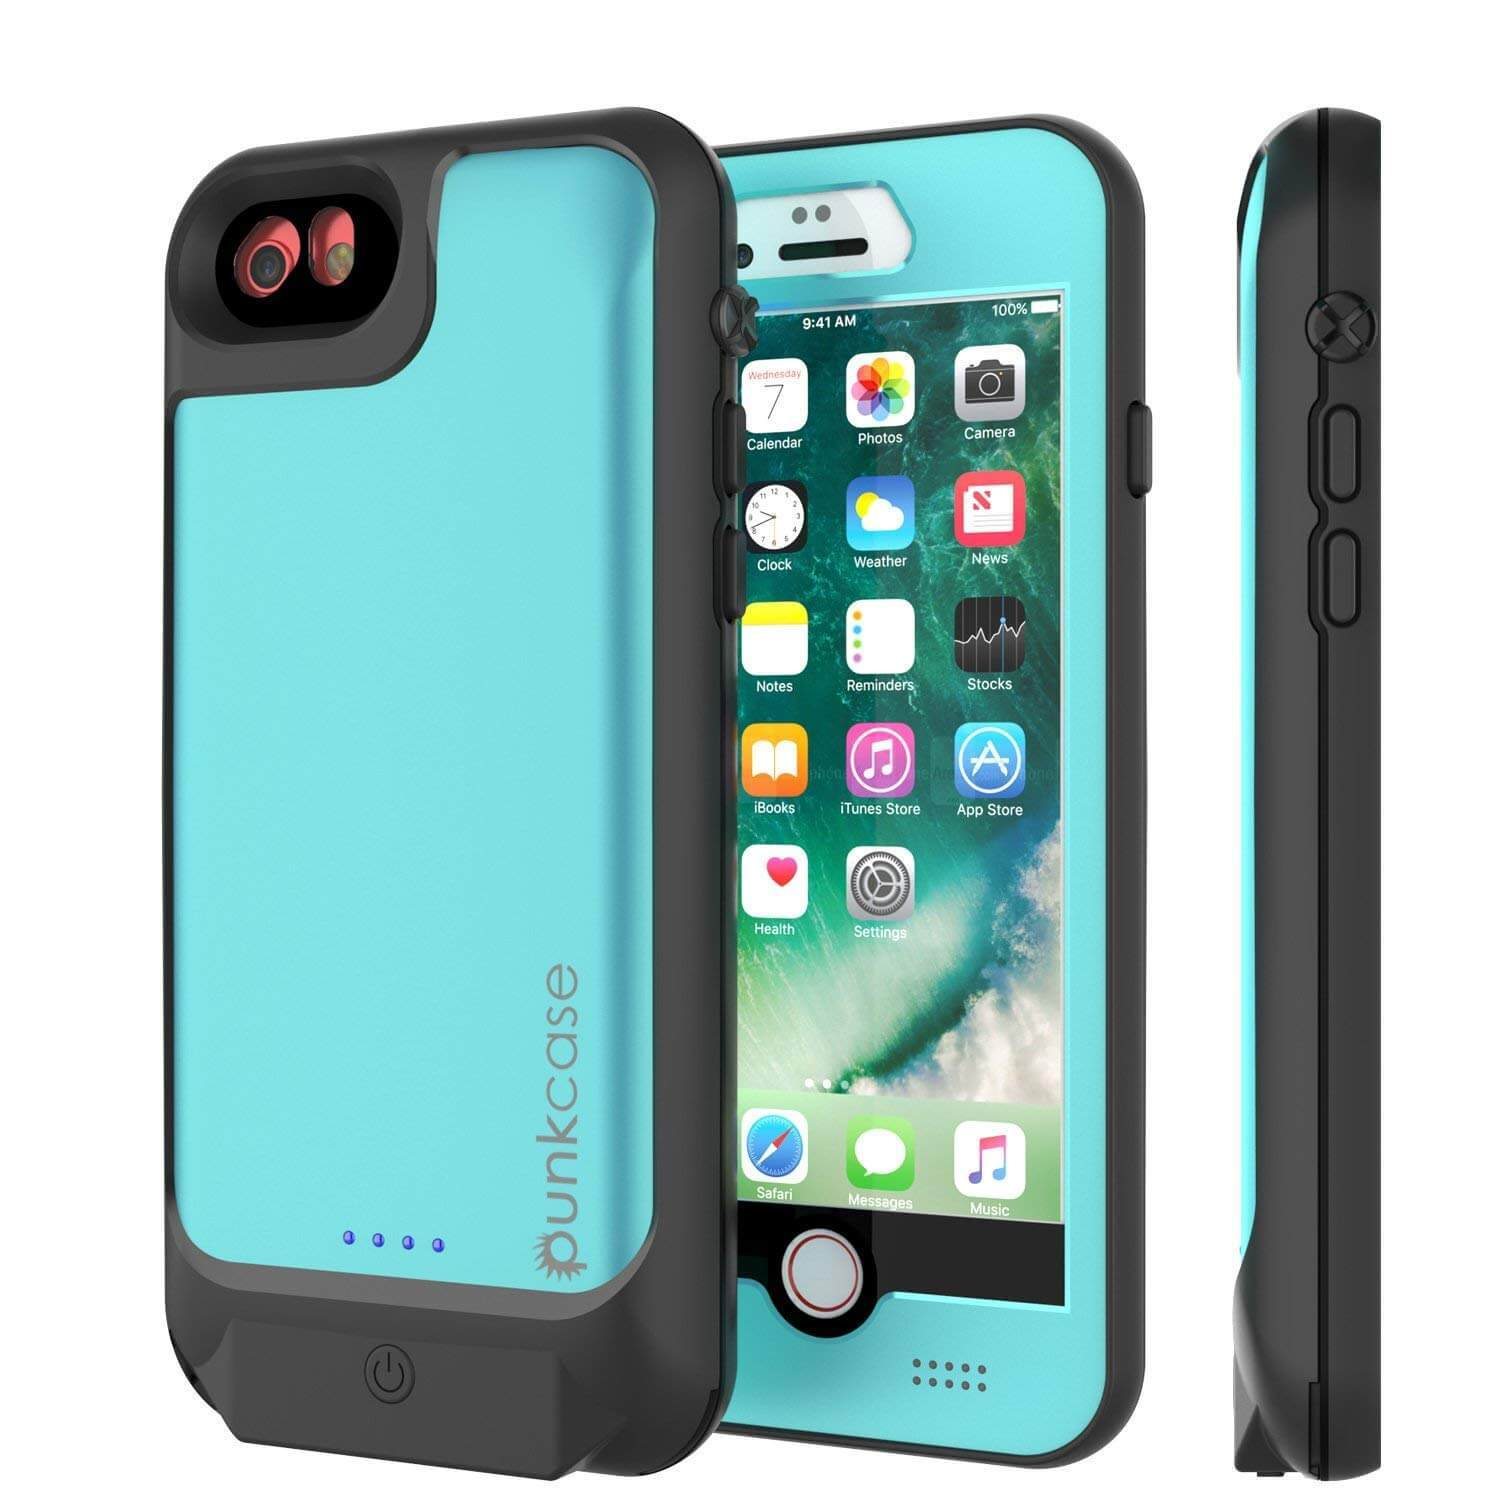 "PunkJuice iPhone SE (4.7"")/7 Battery Case Teal - Waterproof Slim Power Juice Bank with 2750mAh"